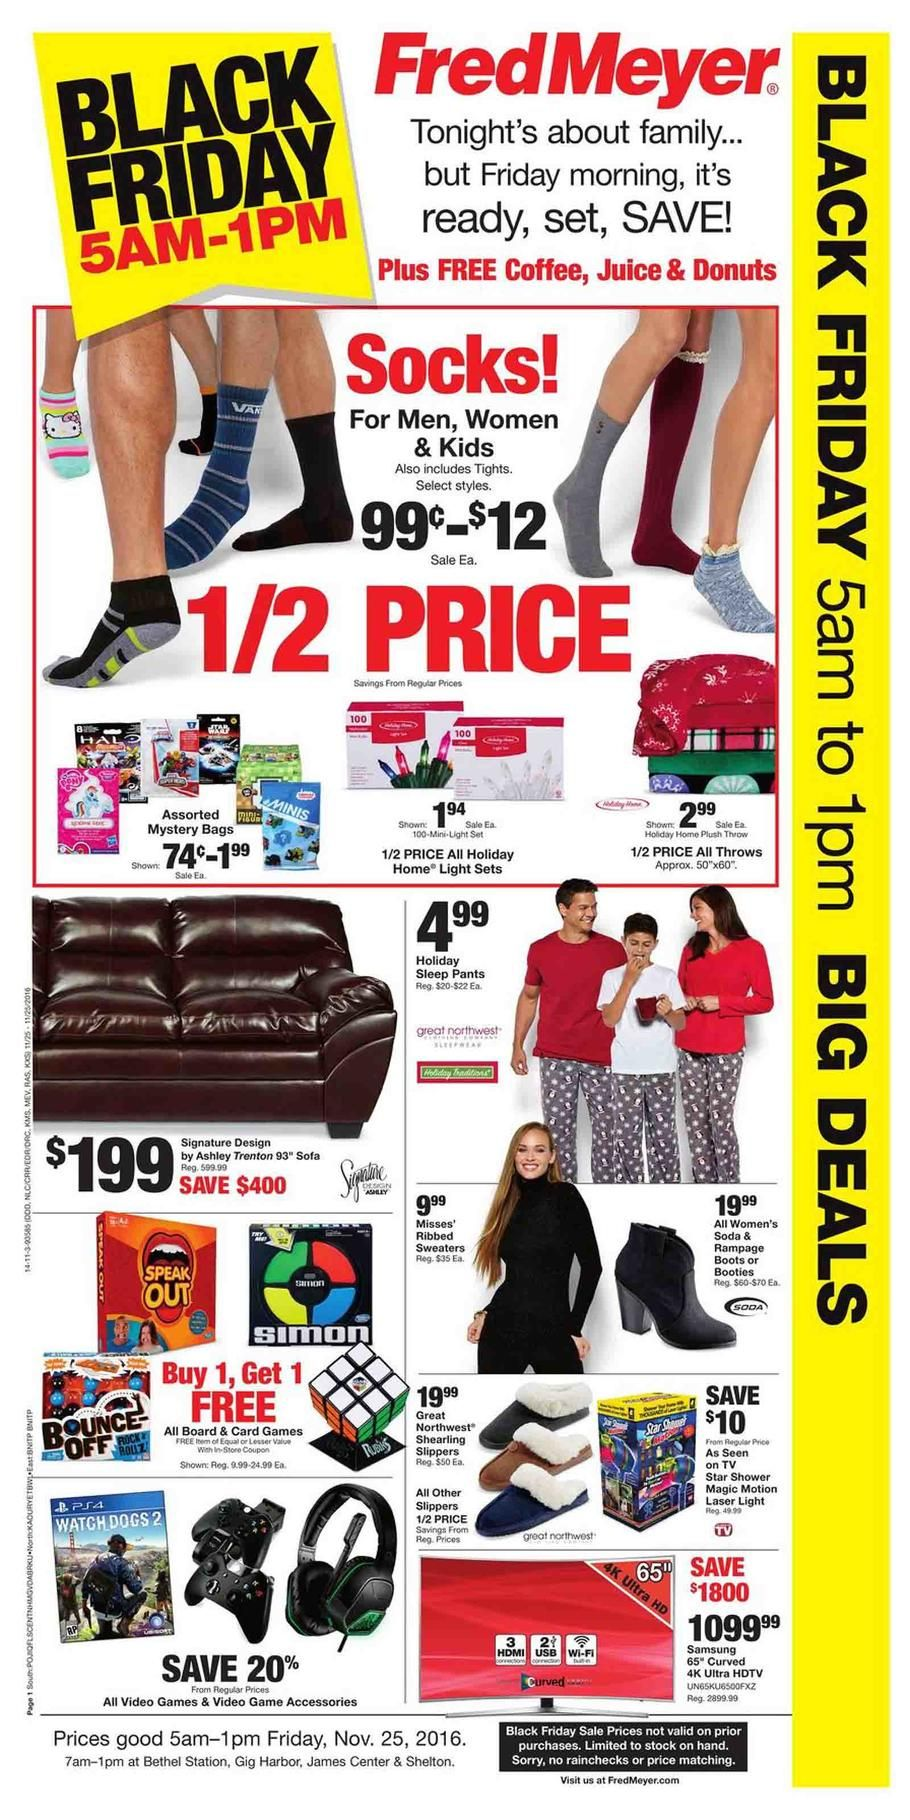 pin by nick w on black friday ads deals pinterest fred meyer black friday and ads - Fred Meyer Hours Christmas